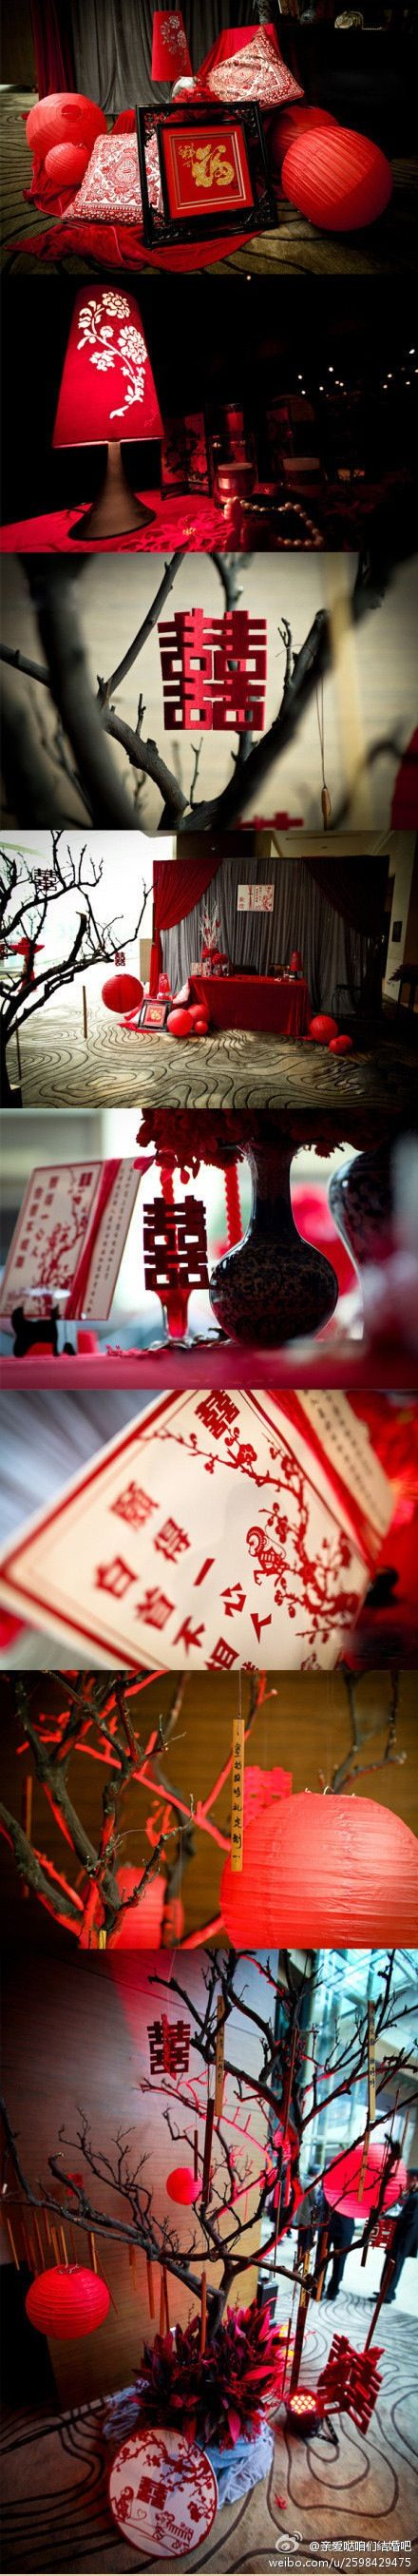 the 25+ best chinese wedding decor ideas on pinterest | asian